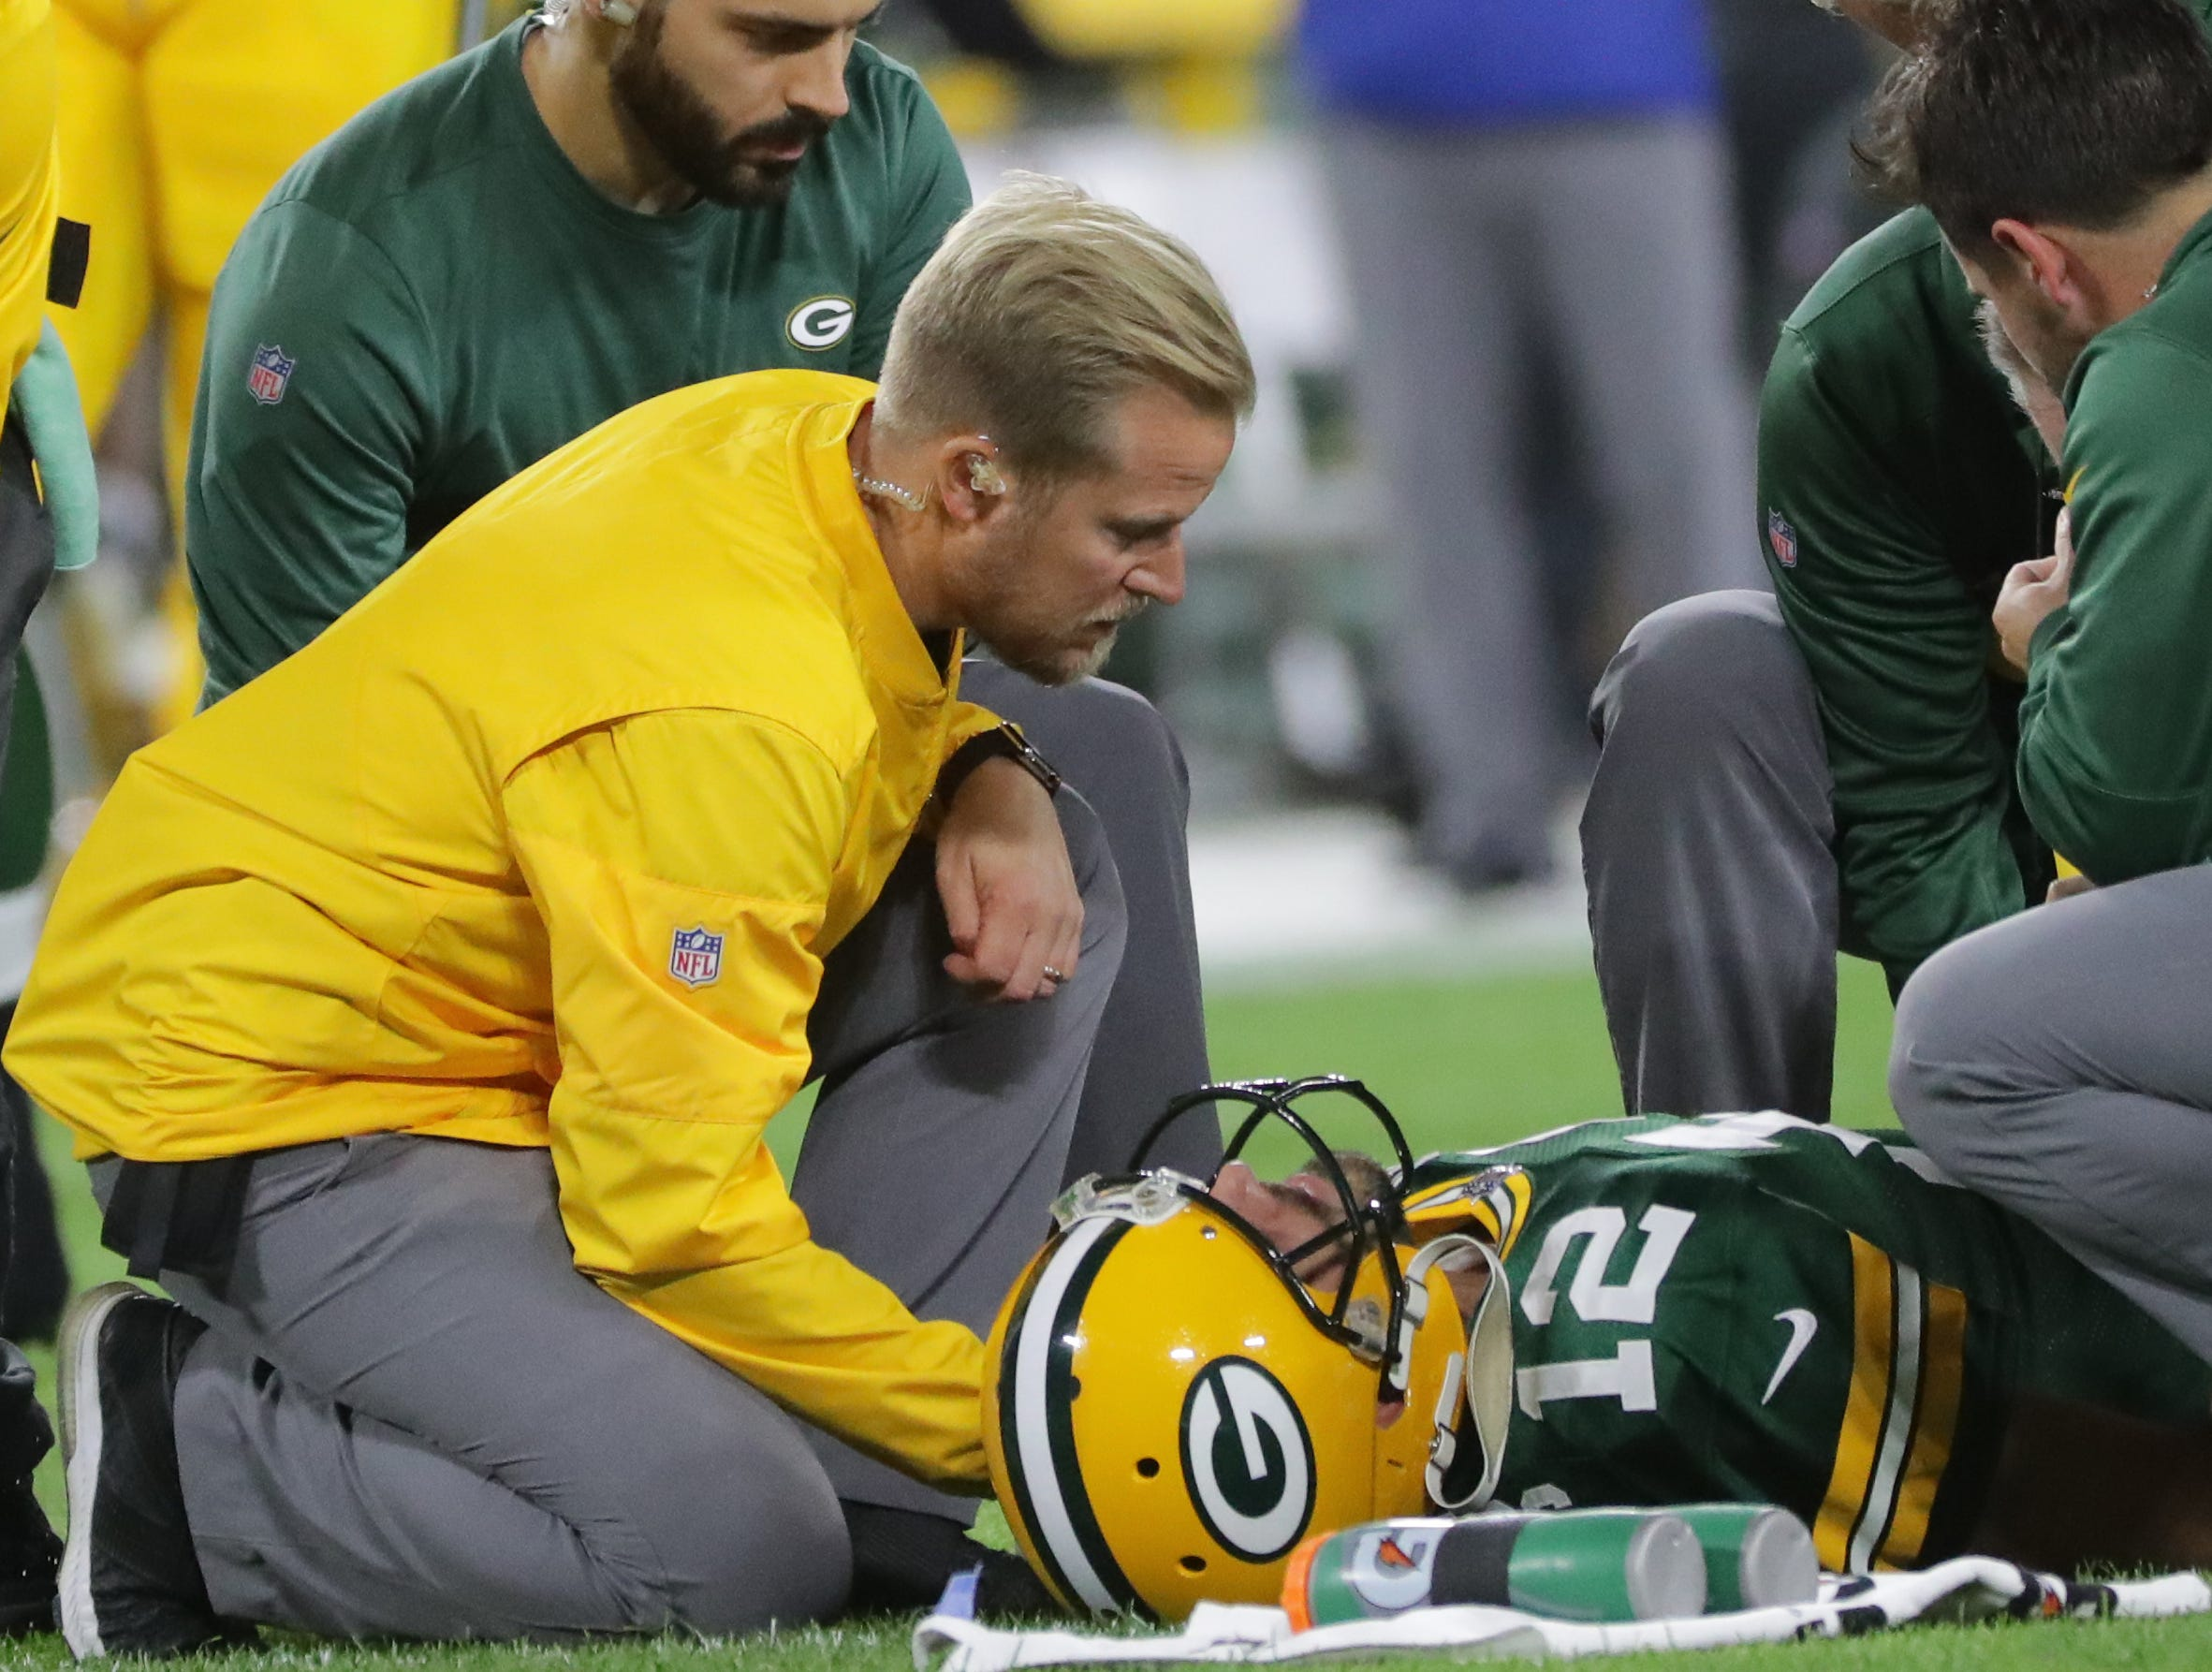 Green Bay Packers quarterback Aaron Rodgers (12) is tended to by the training staff after being injured during the second quarter of their game against the Chicago Bears Sunday, September 9, 2018 at Lambeau Field in Green Bay, Wis.